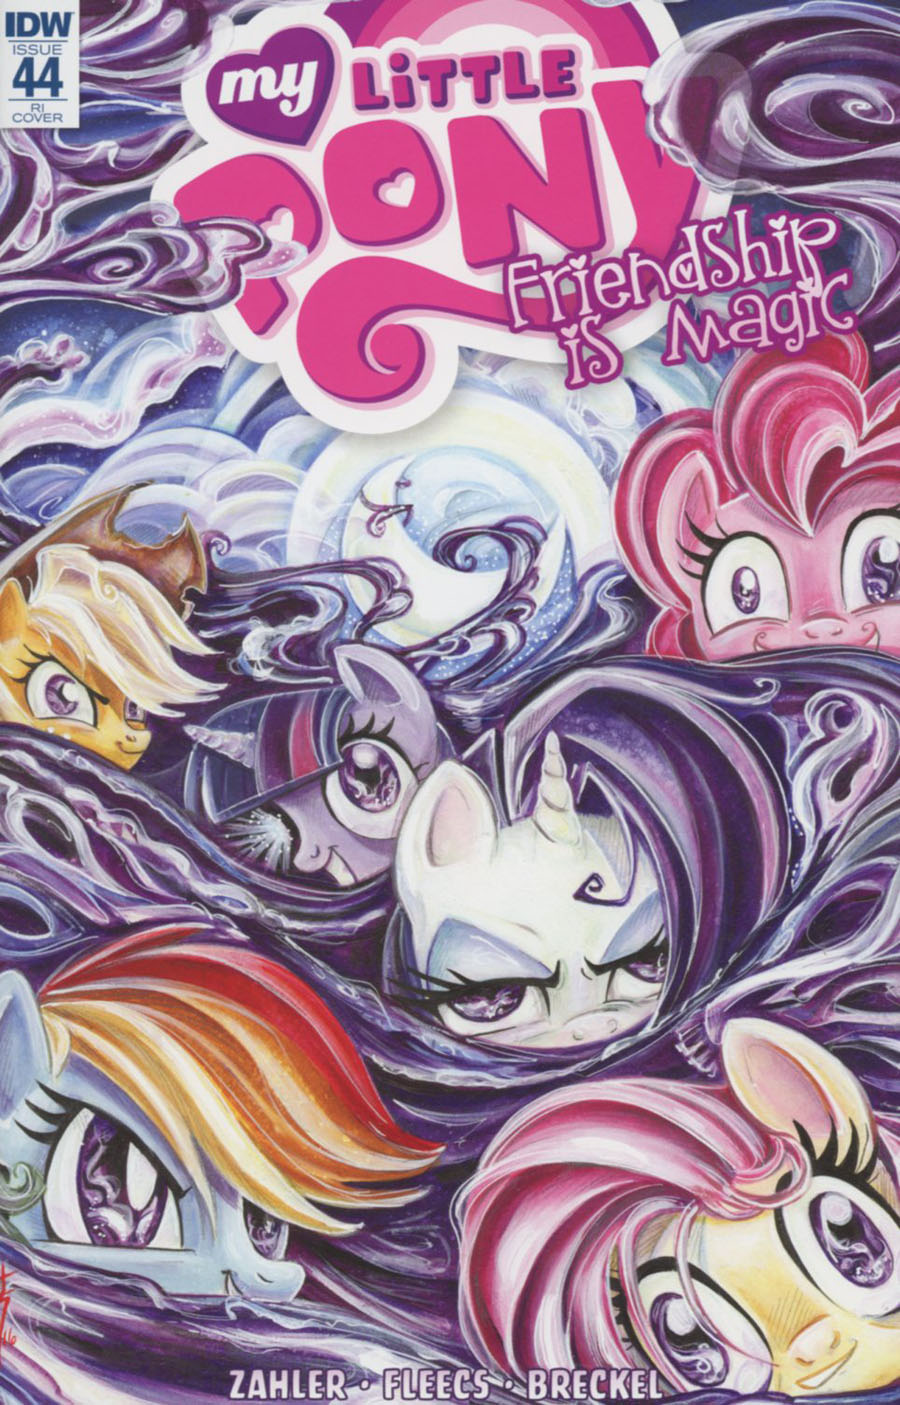 My Little Pony Friendship Is Magic #44 Cover C Incentive Sara Richard Variant Cover